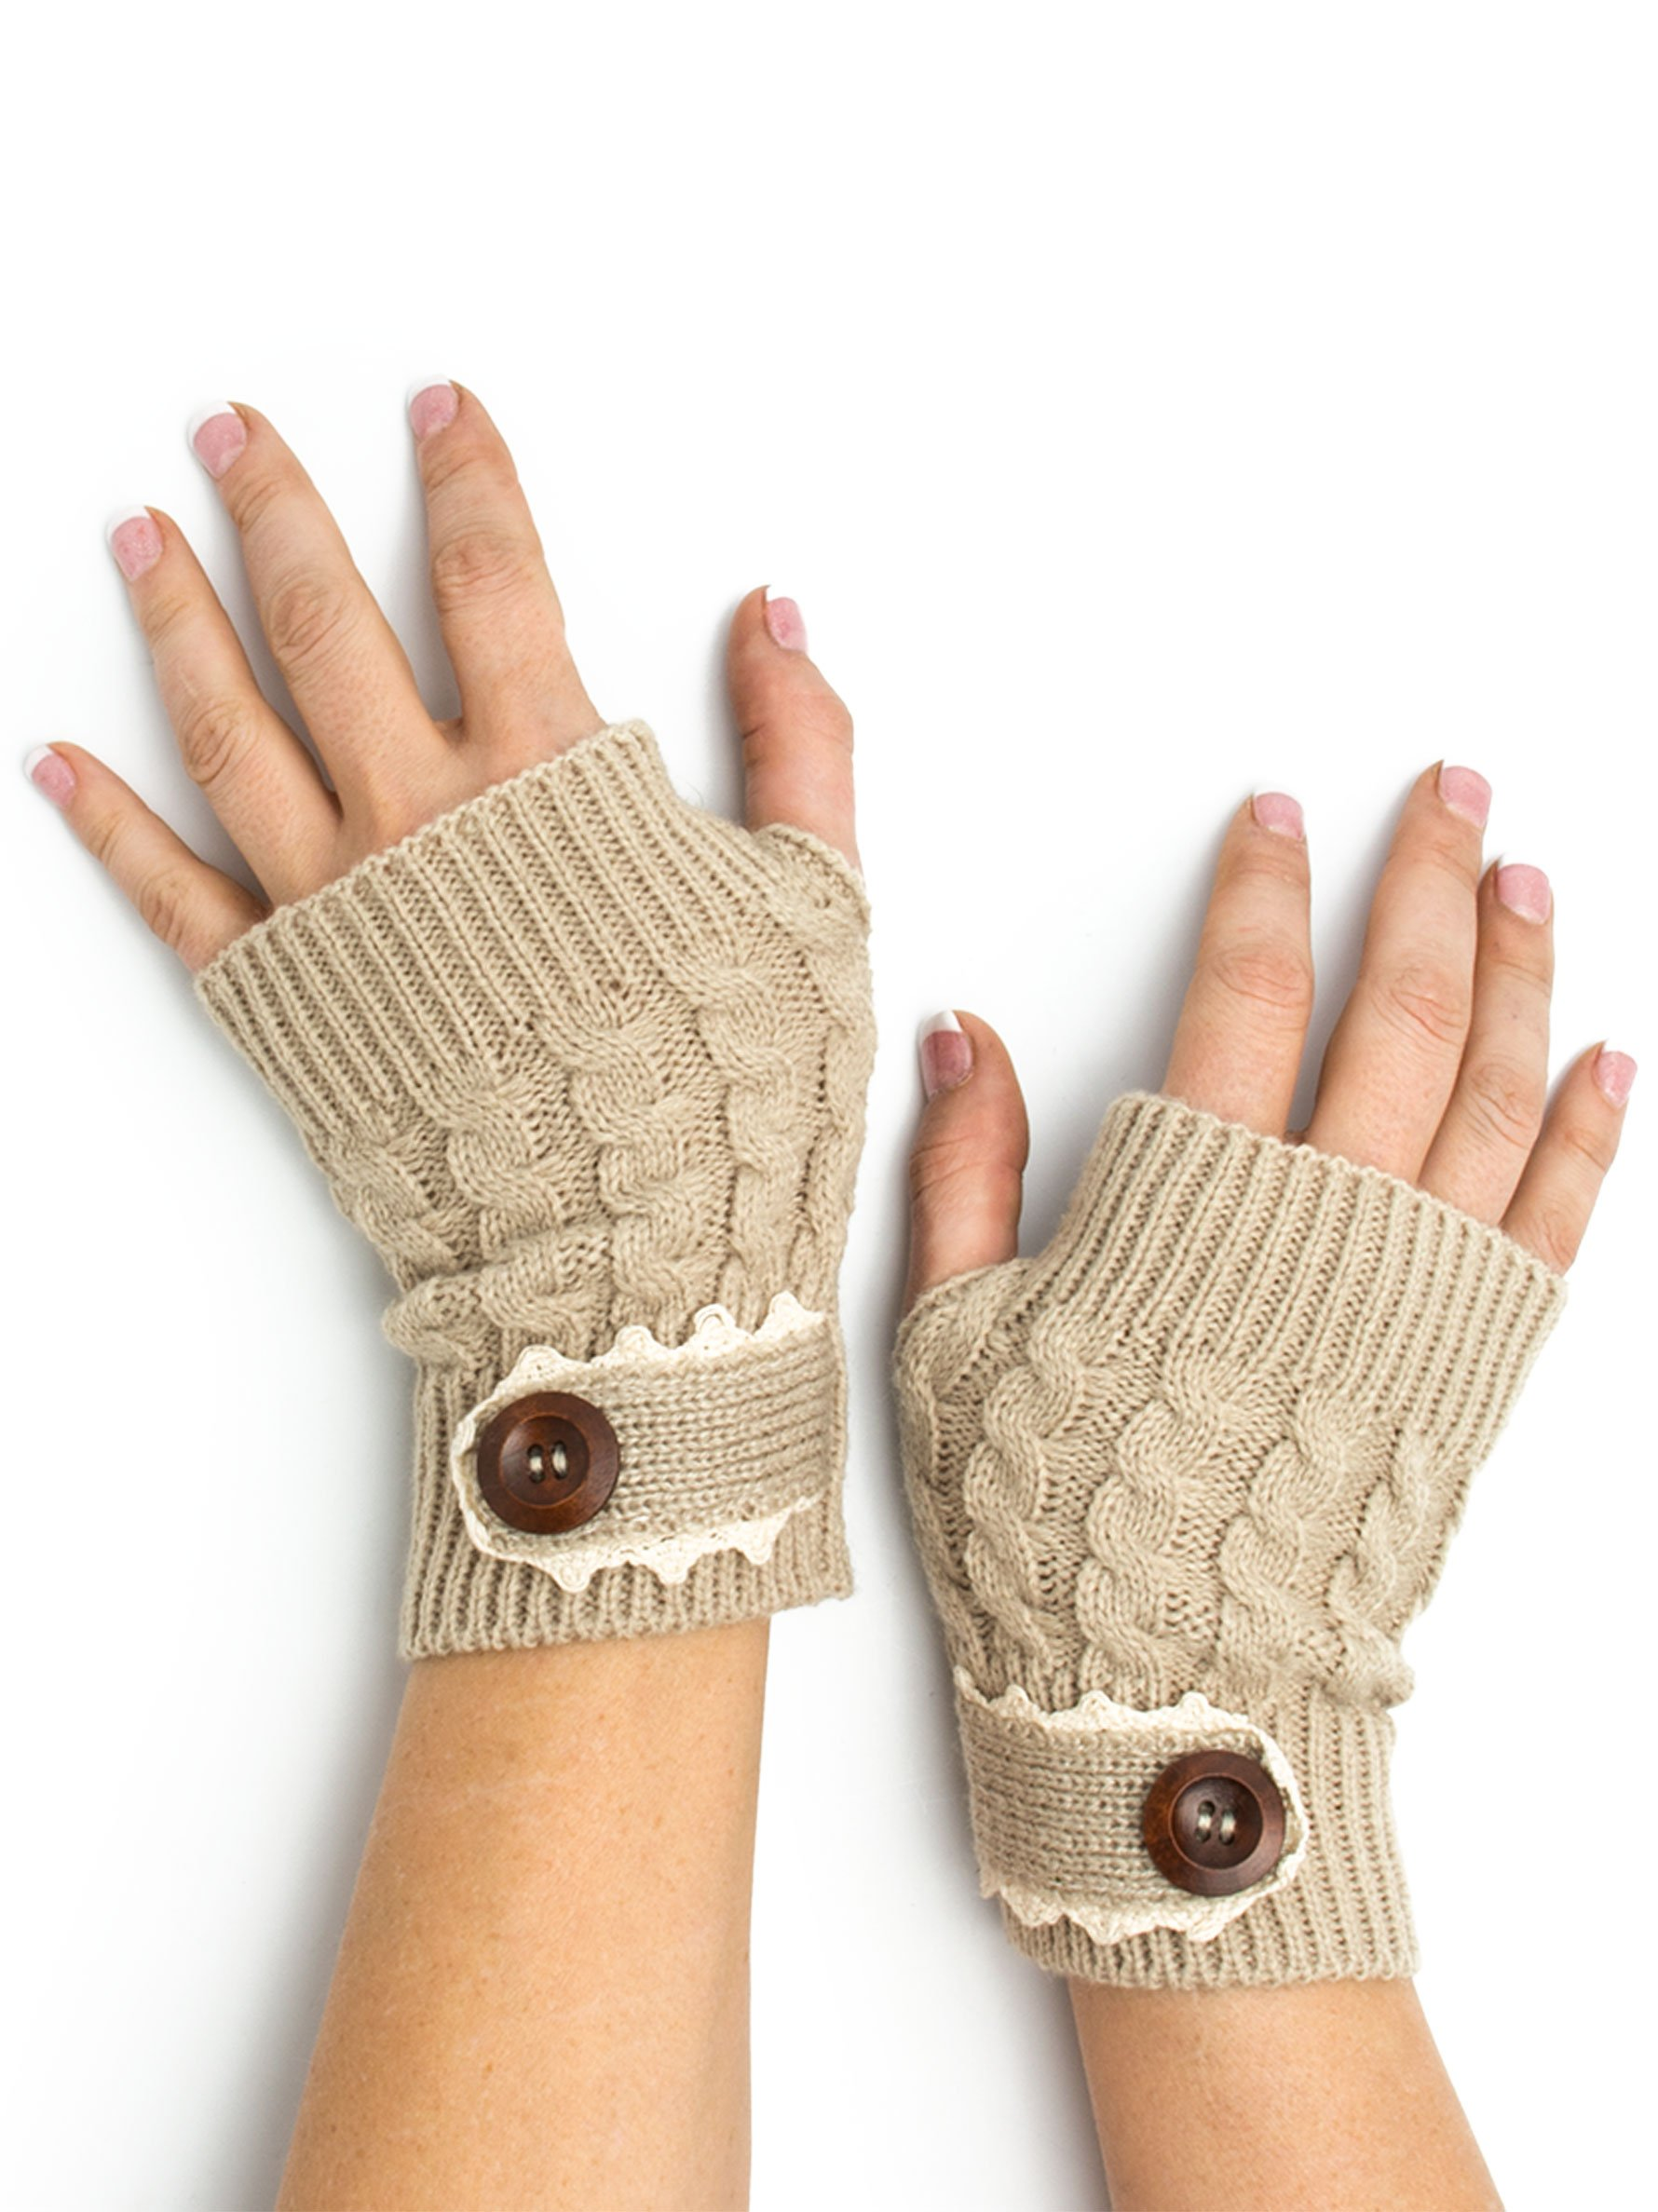 Bohomonde, Tawny Cable Knit Boho Mori Style Armwarmers/Fingerless Gloves with Crochet Lace (Sand)